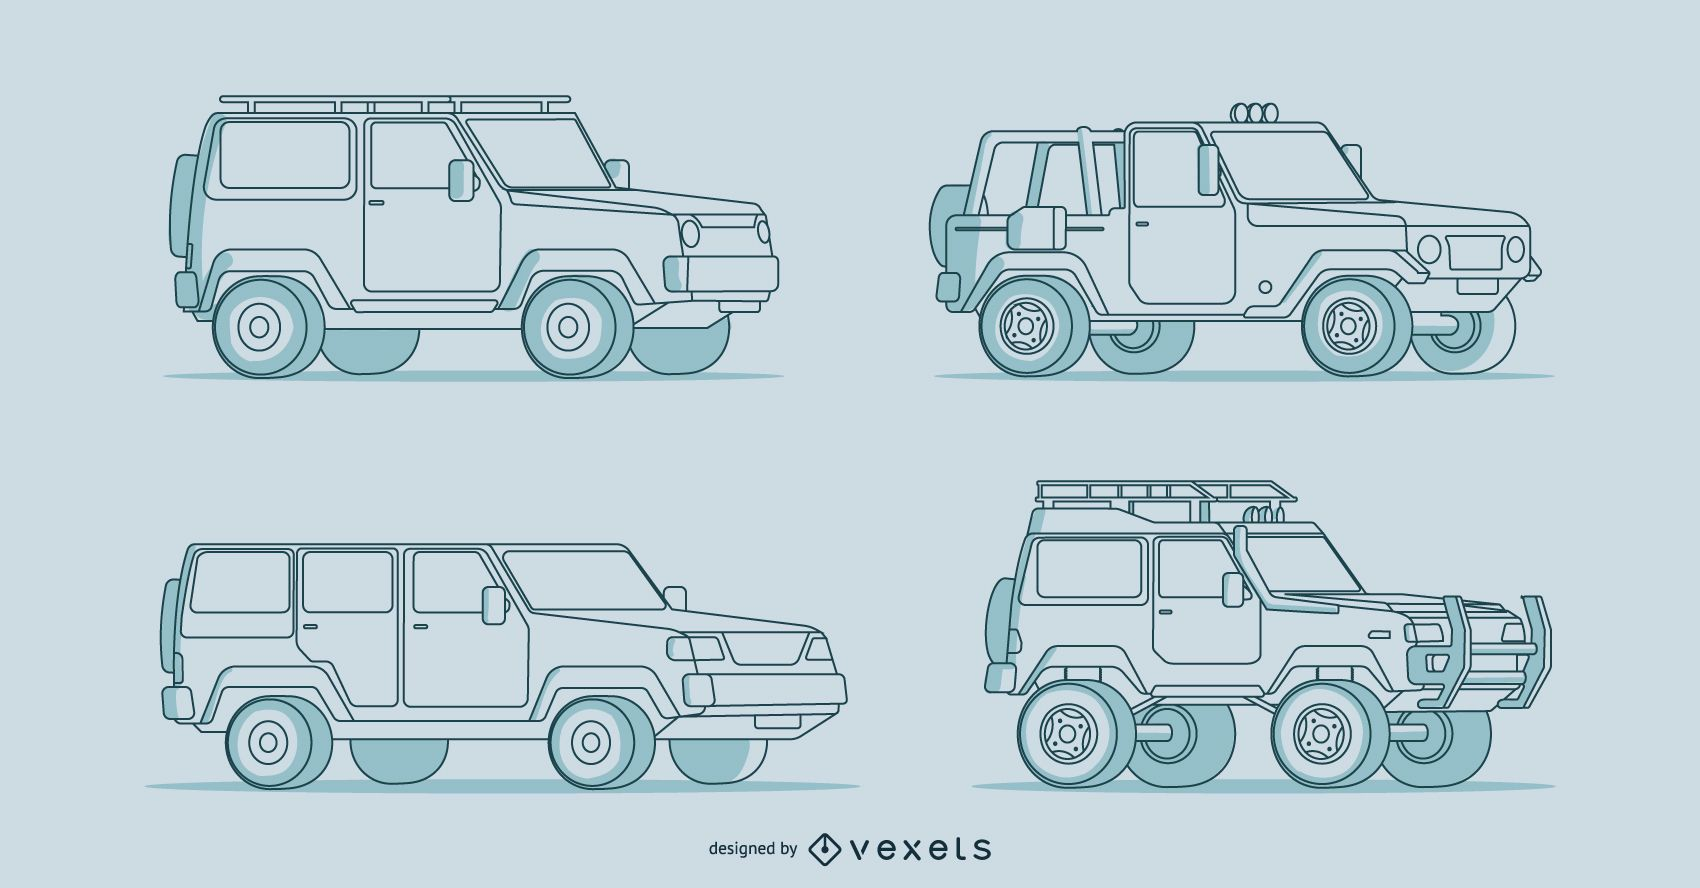 Four detailed hand-drawn car illustrations